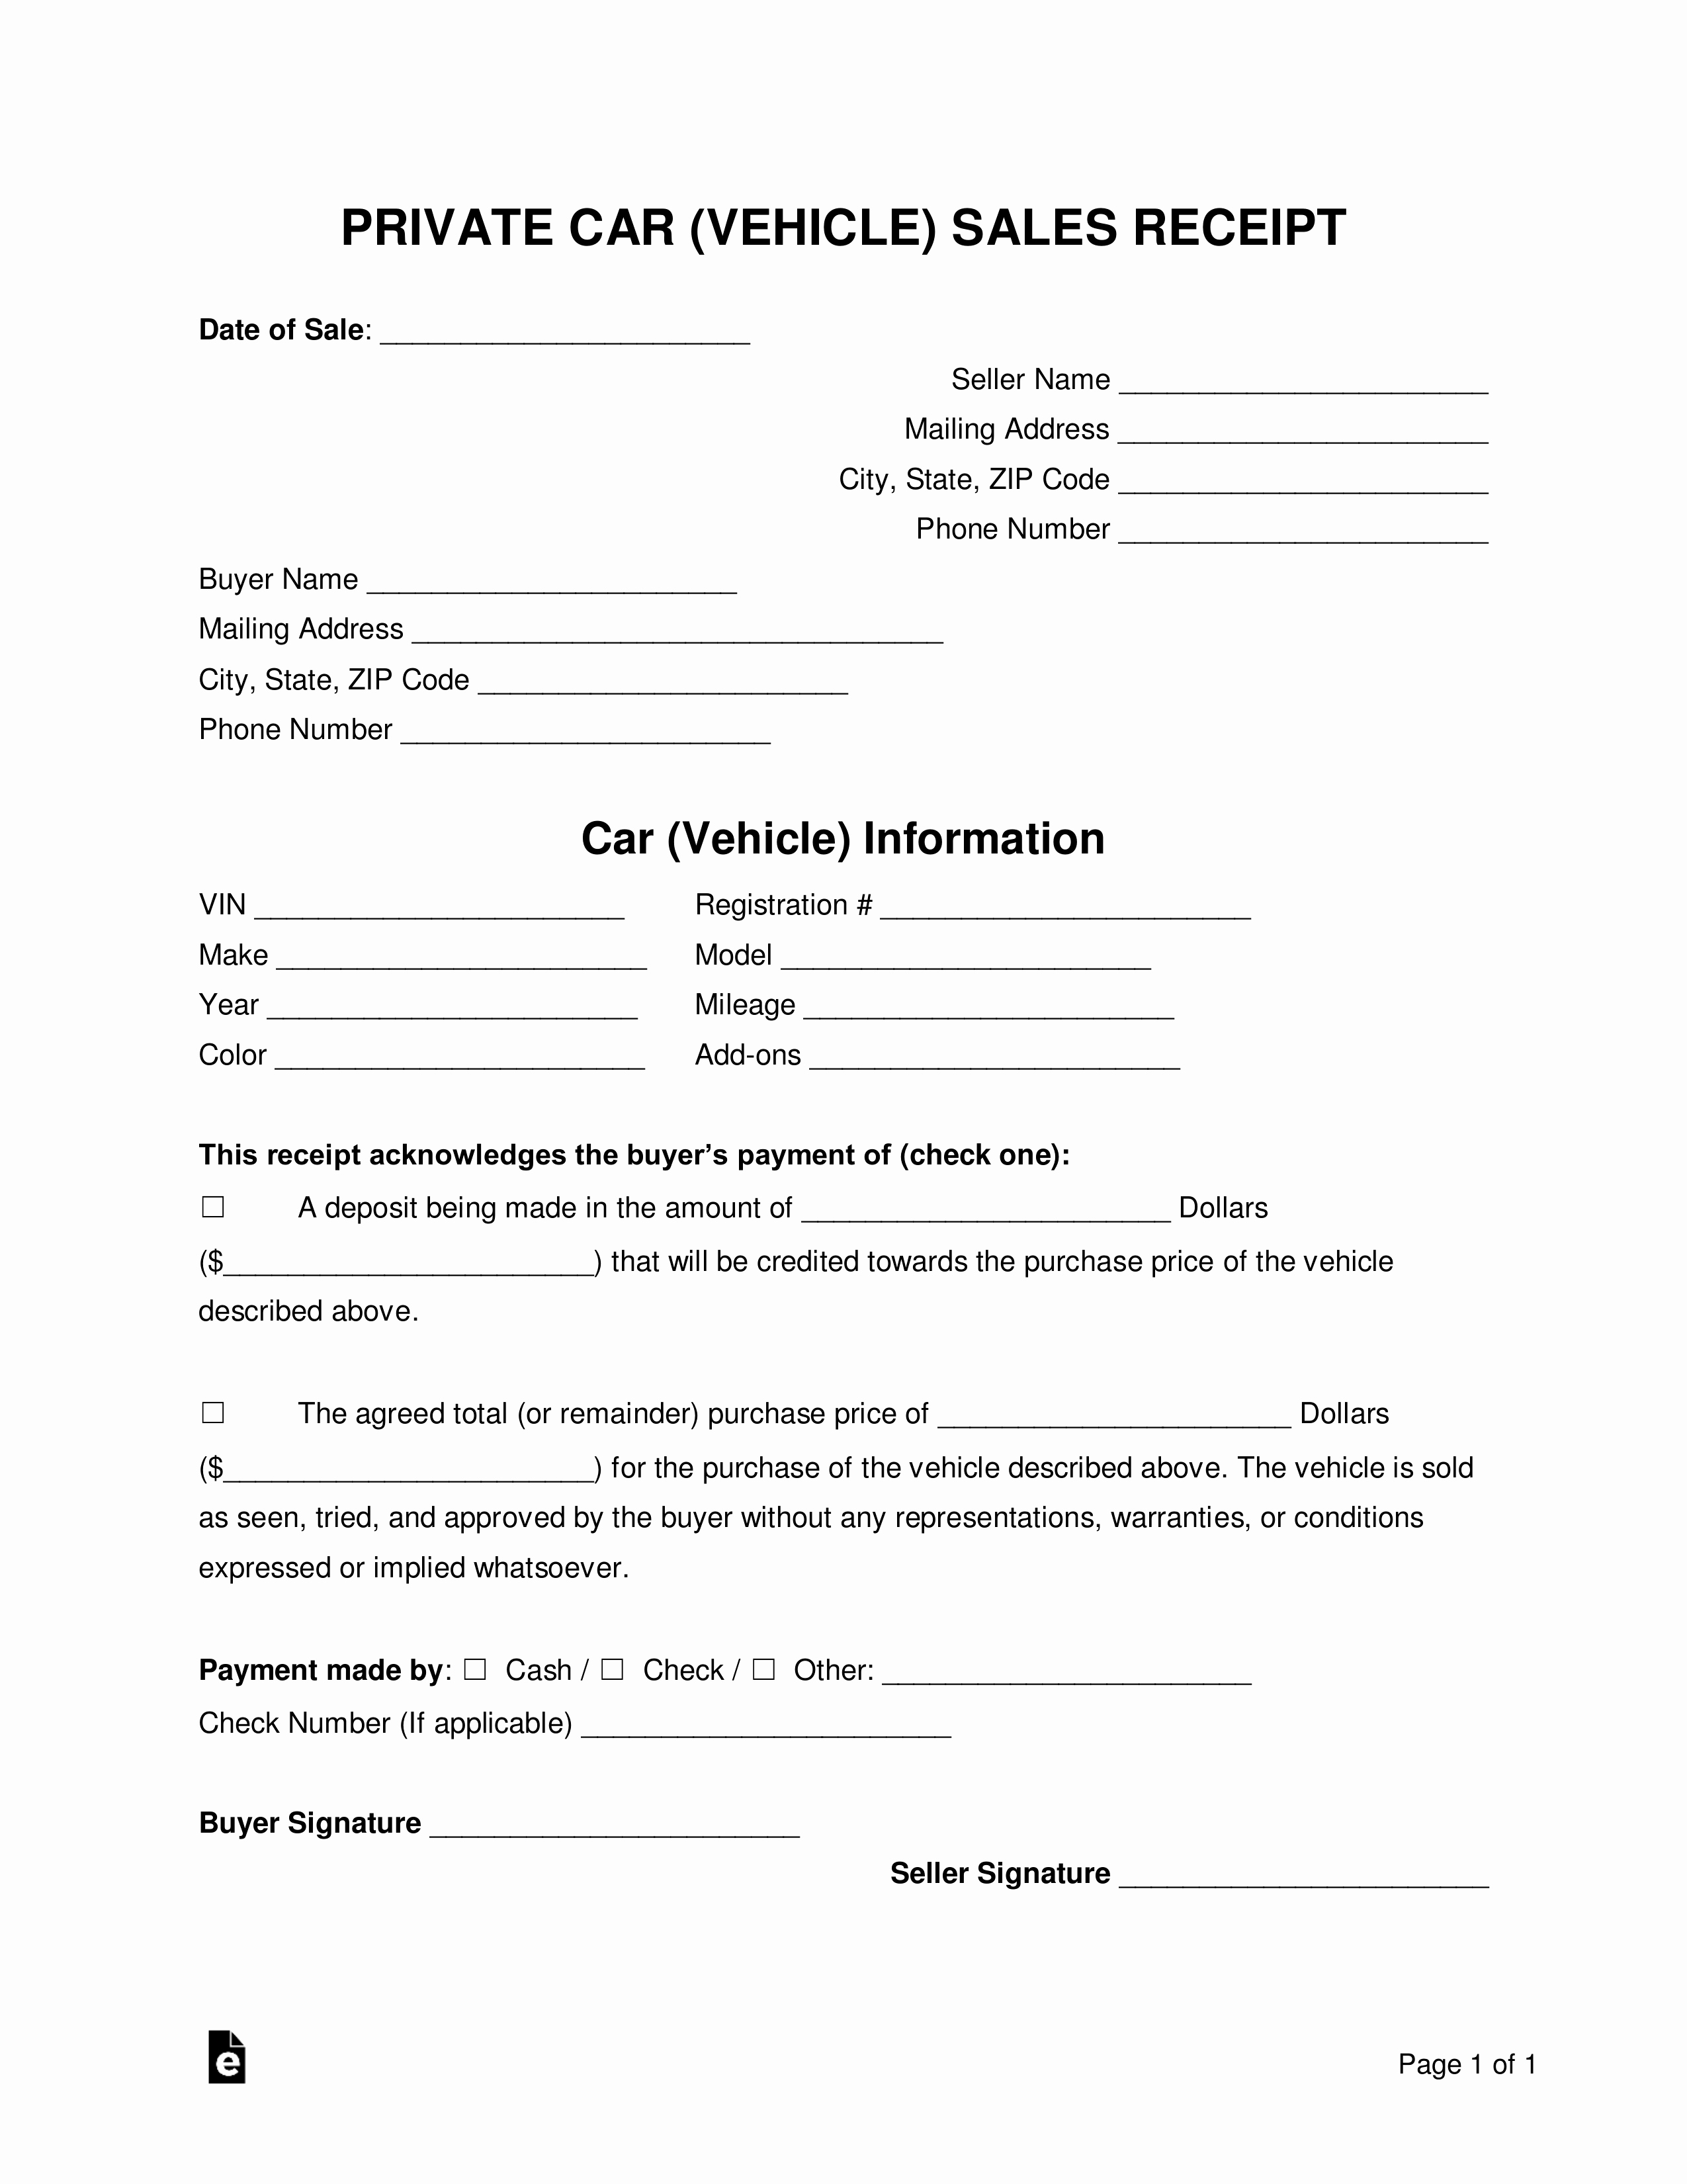 Car Sale Receipt Template Awesome Free Vehicle Private Sale Receipt Template Pdf